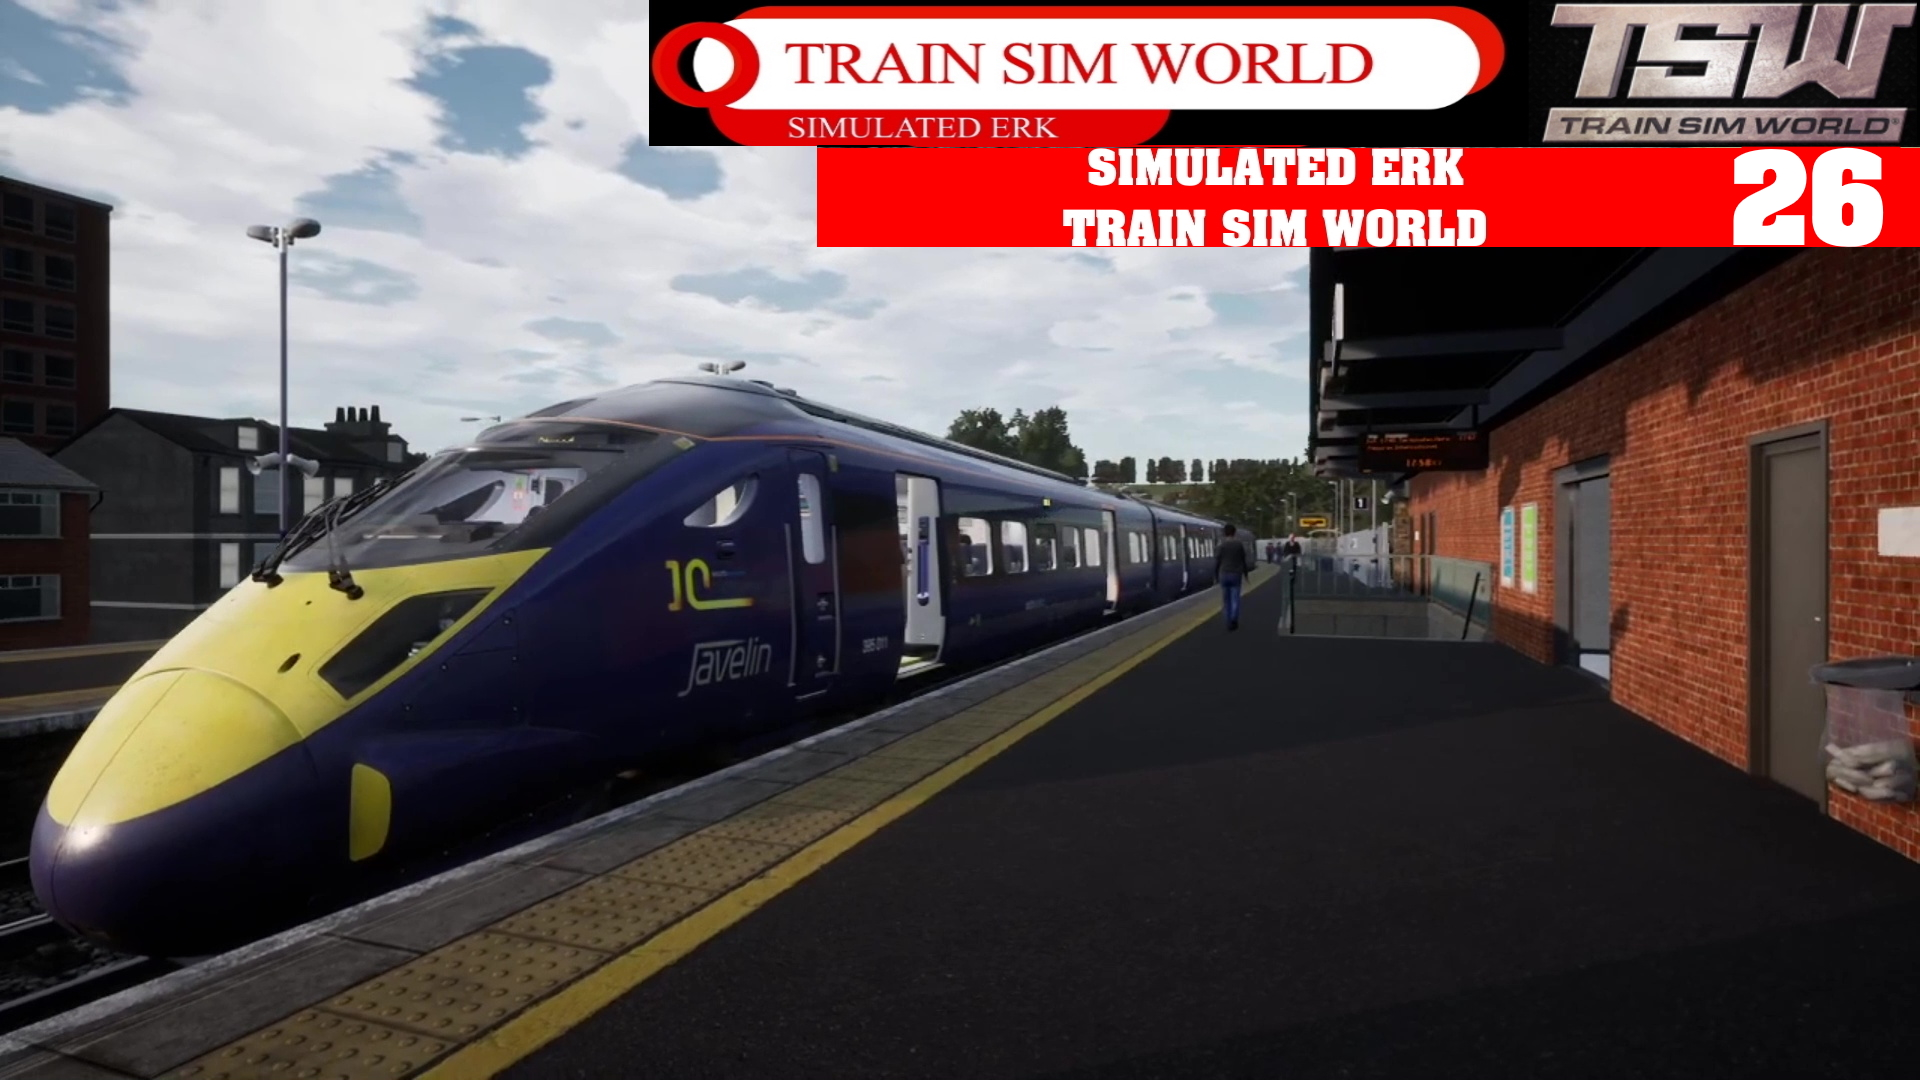 Simulated Erk: Train Sim World episode 26 | Bank Holiday Tunnel Of Doom